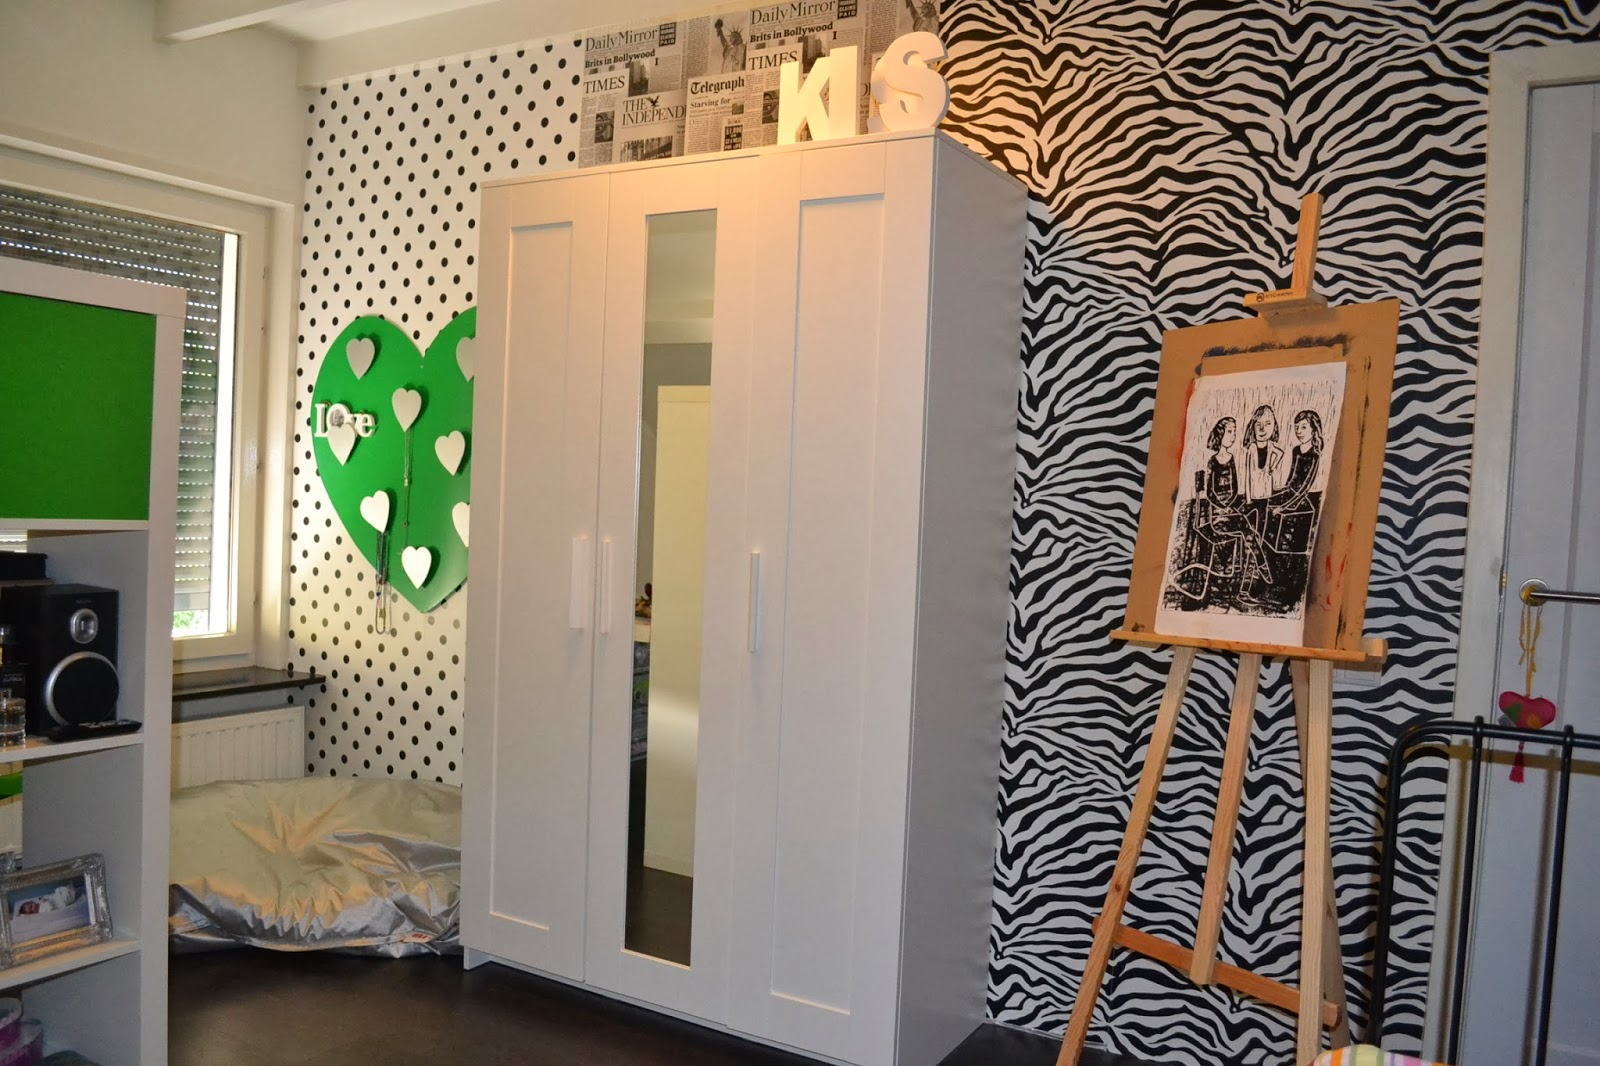 Bank Wit By& Interieur Advies Styling - Recente Projecten: November